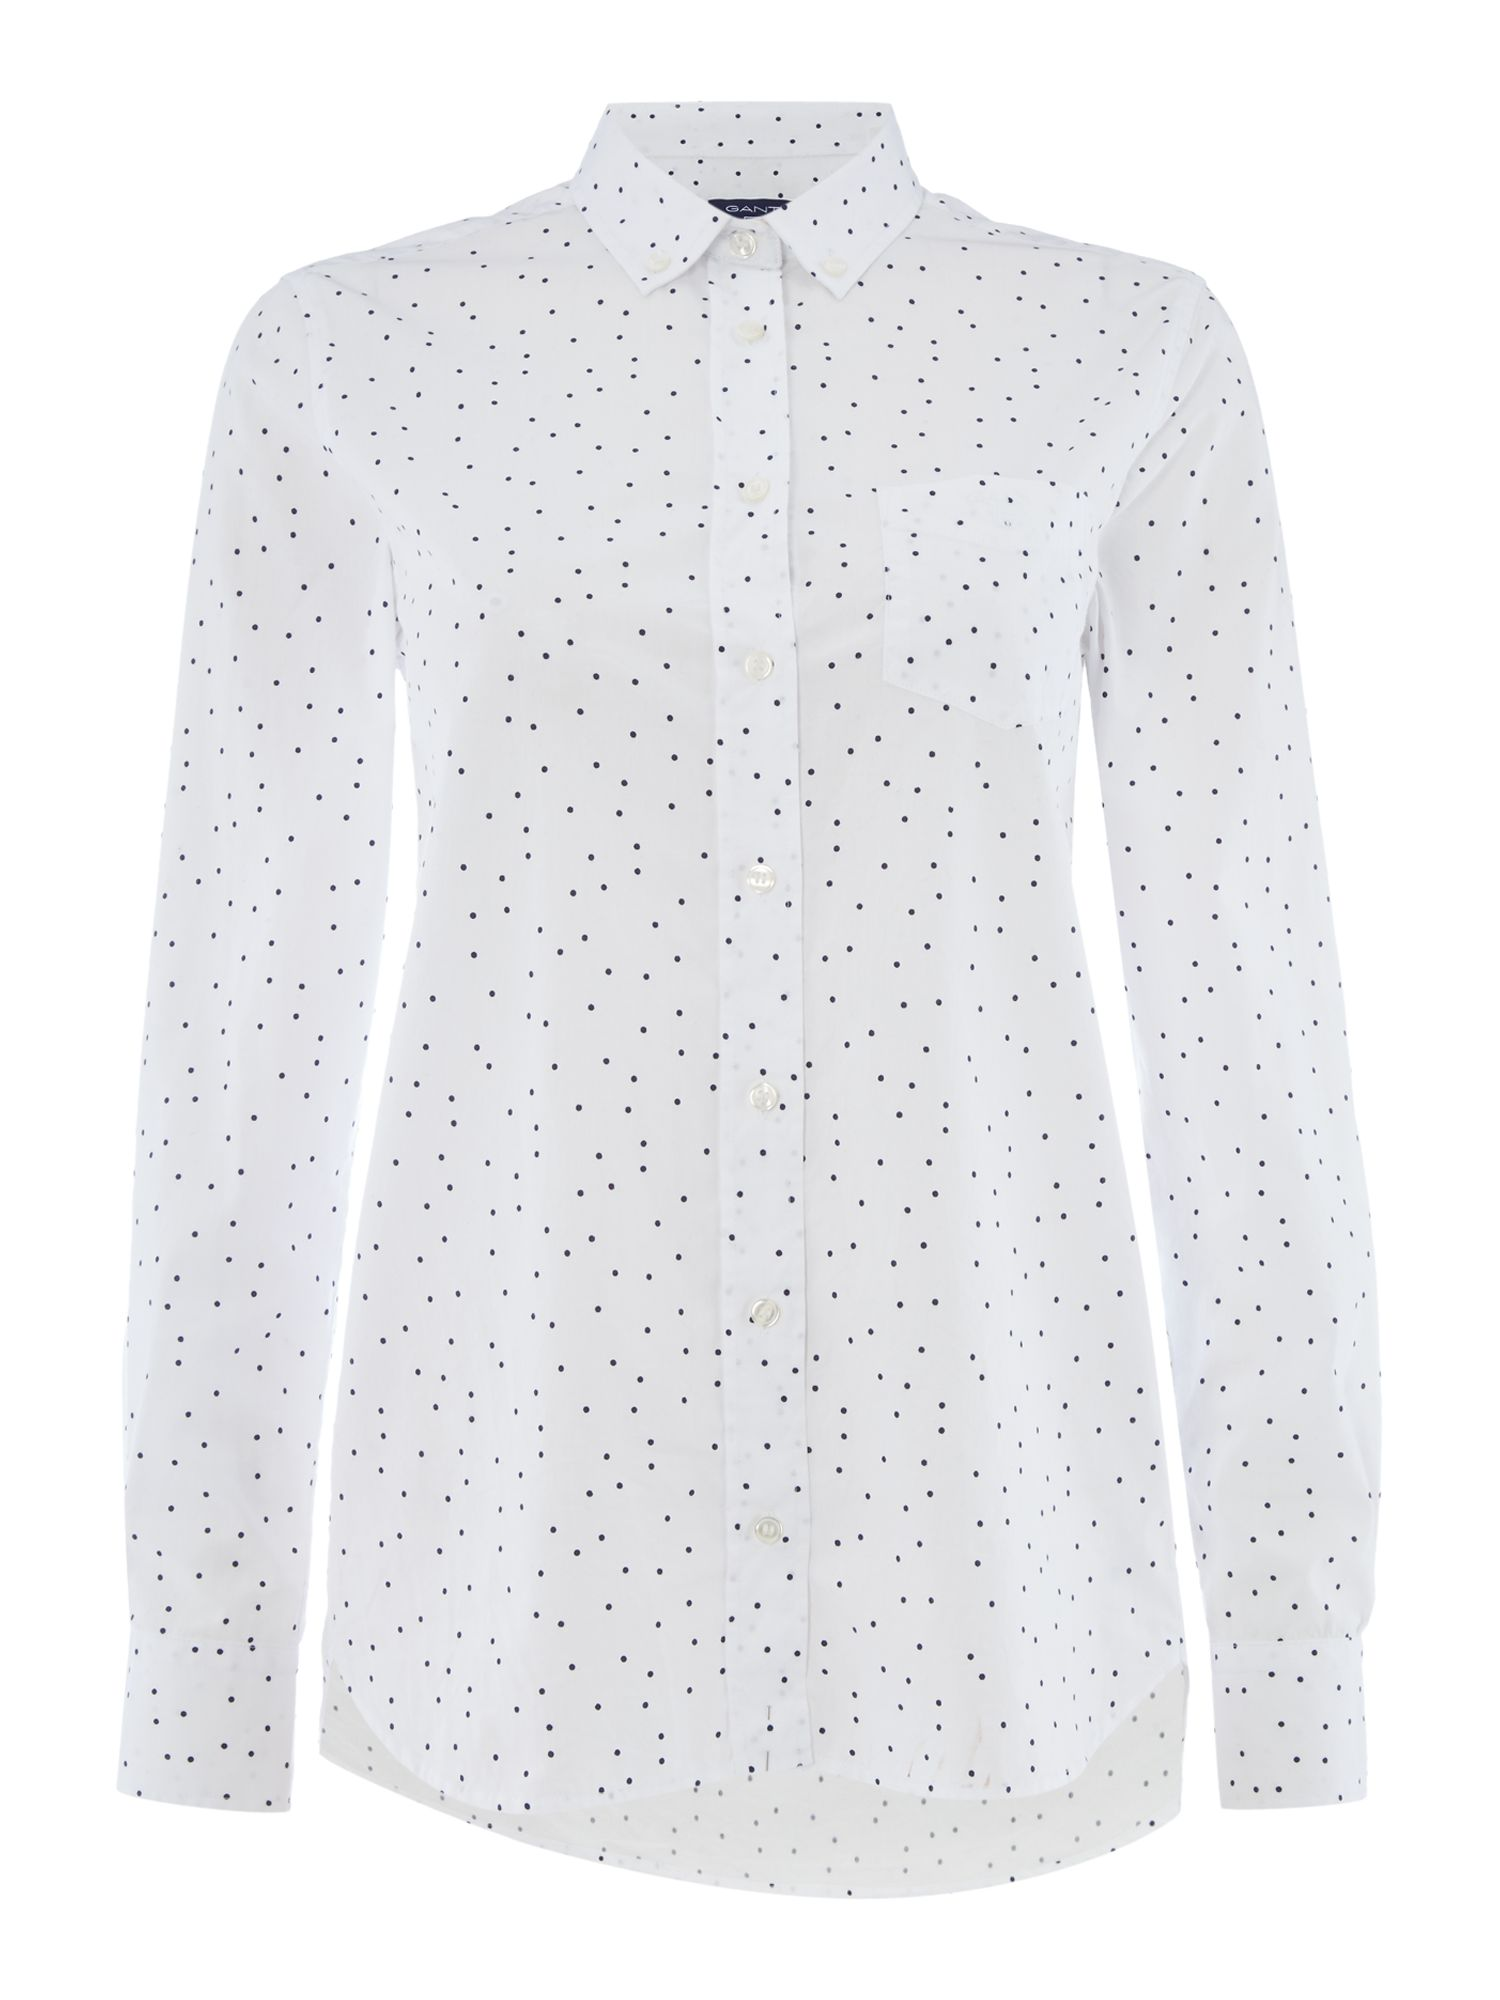 Gant Woven dot printed shirt, White